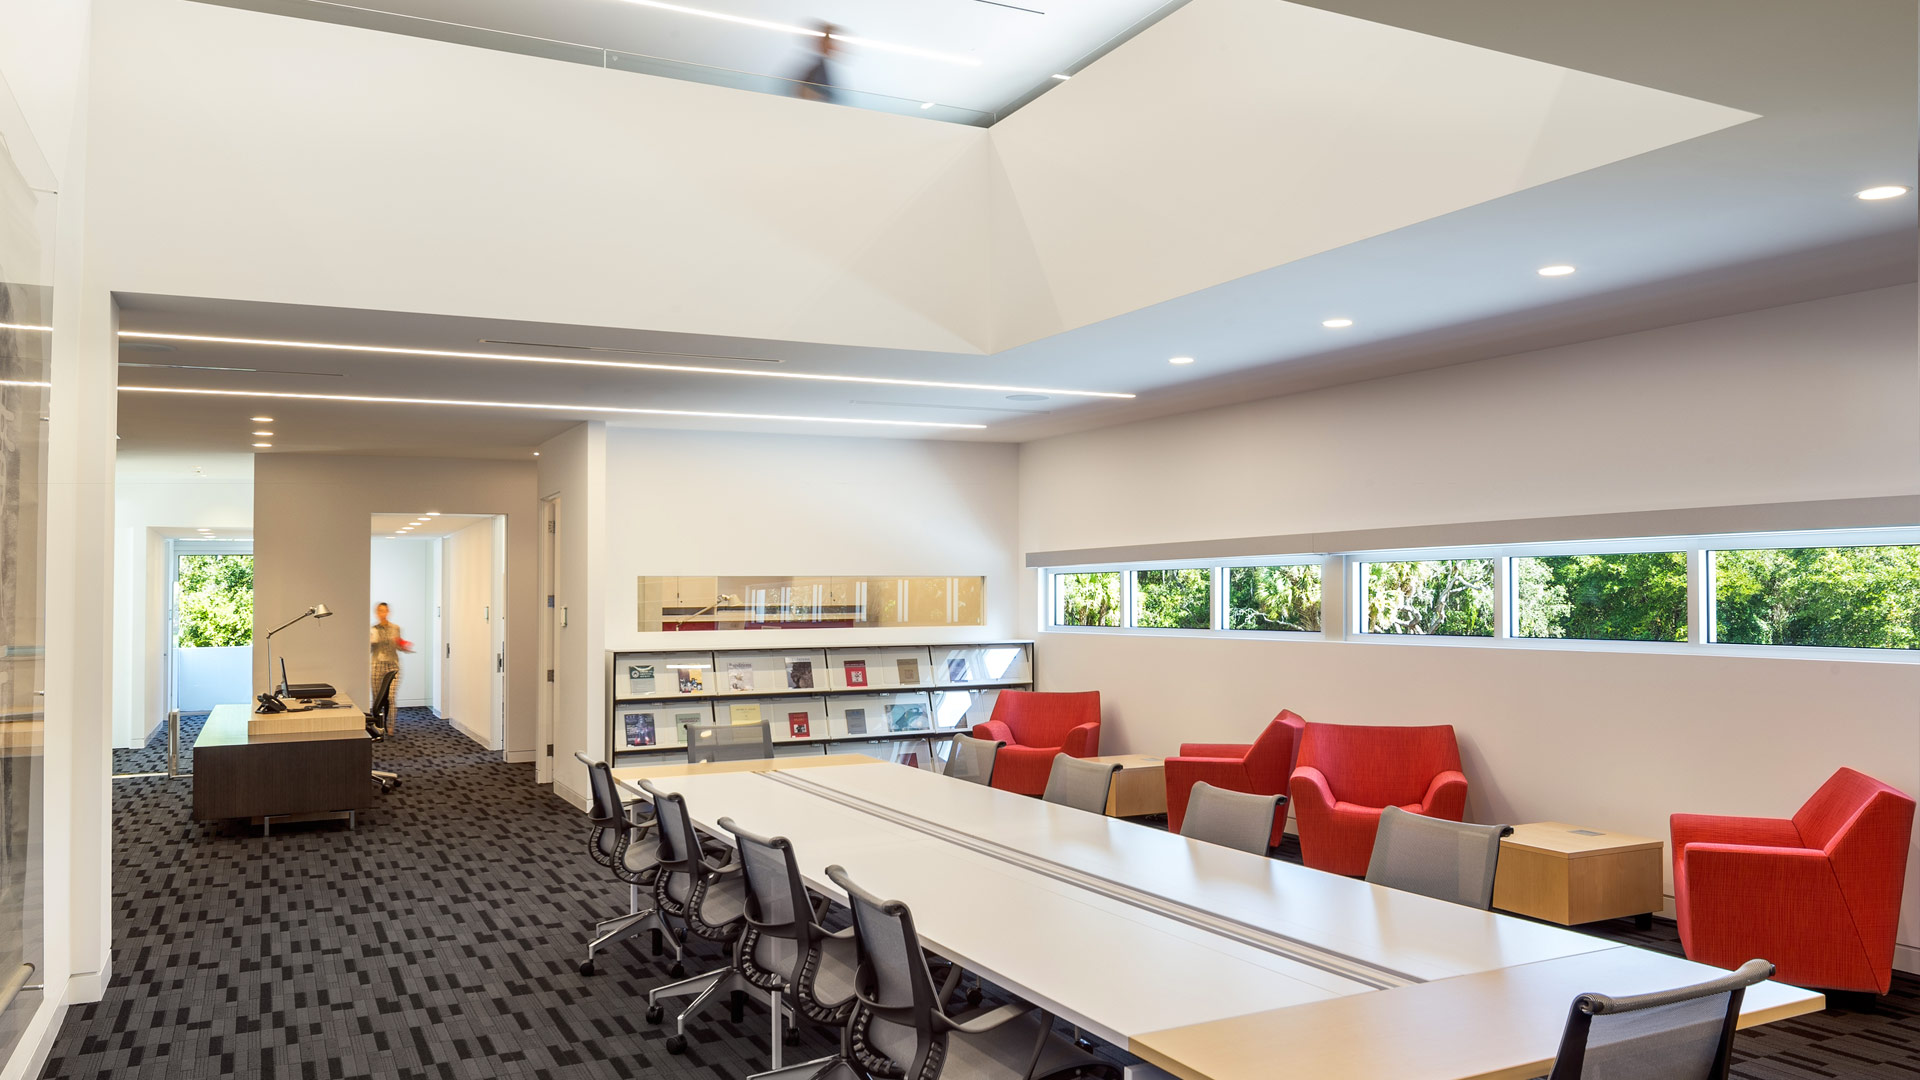 Based In Sarasota, DKL Creates Modern, Architectural Interiors That Go  Beyond Basic Home Decorating By Carefully Integrating Lighting, Finishes,  ...